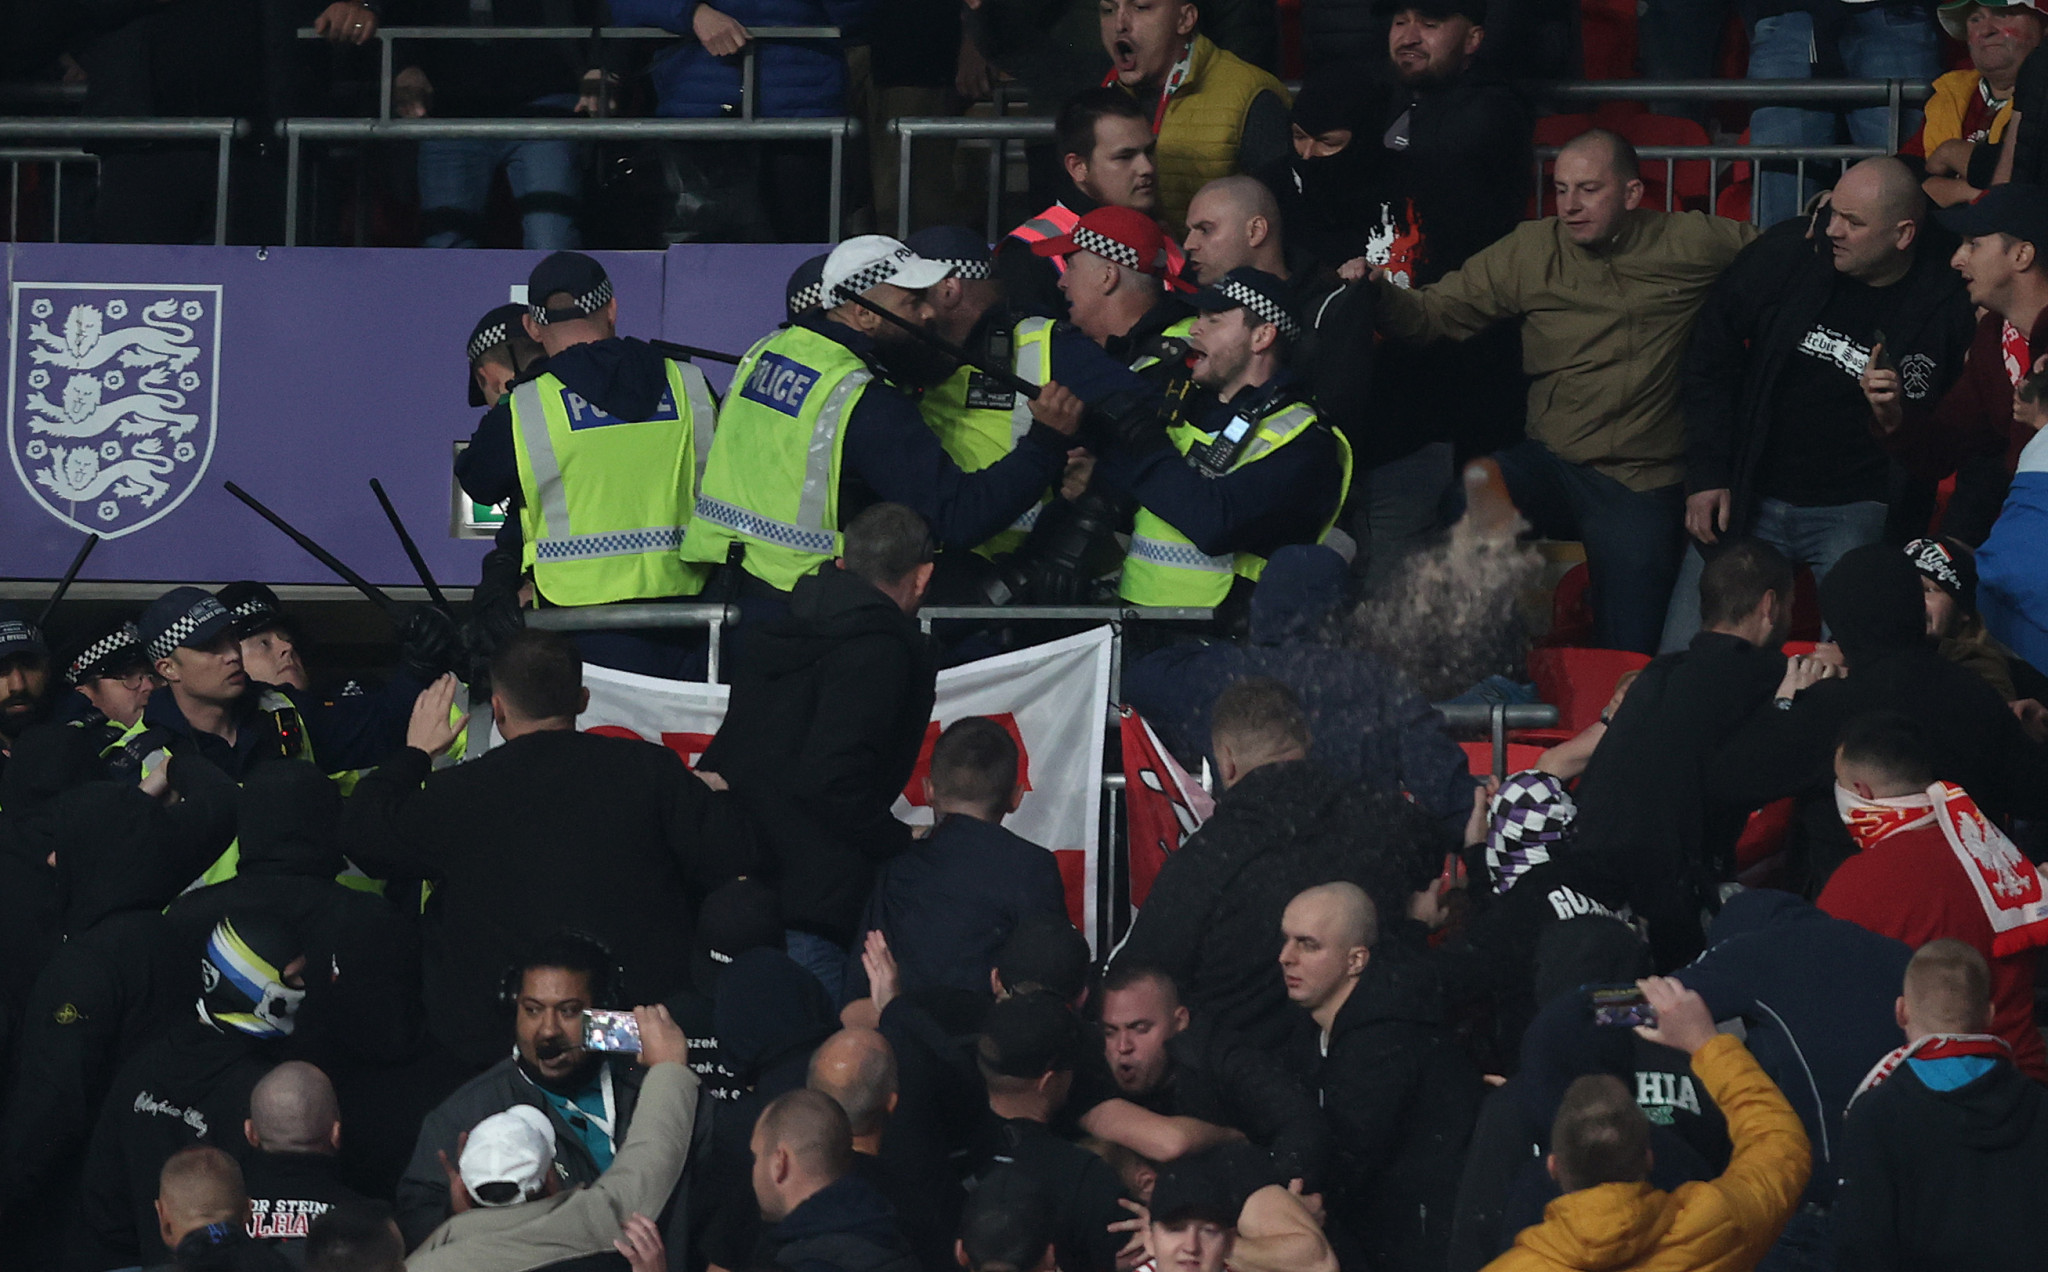 FIFA opens disciplinary proceedings following crowd trouble at Hungary and Albania World Cup qualifiers